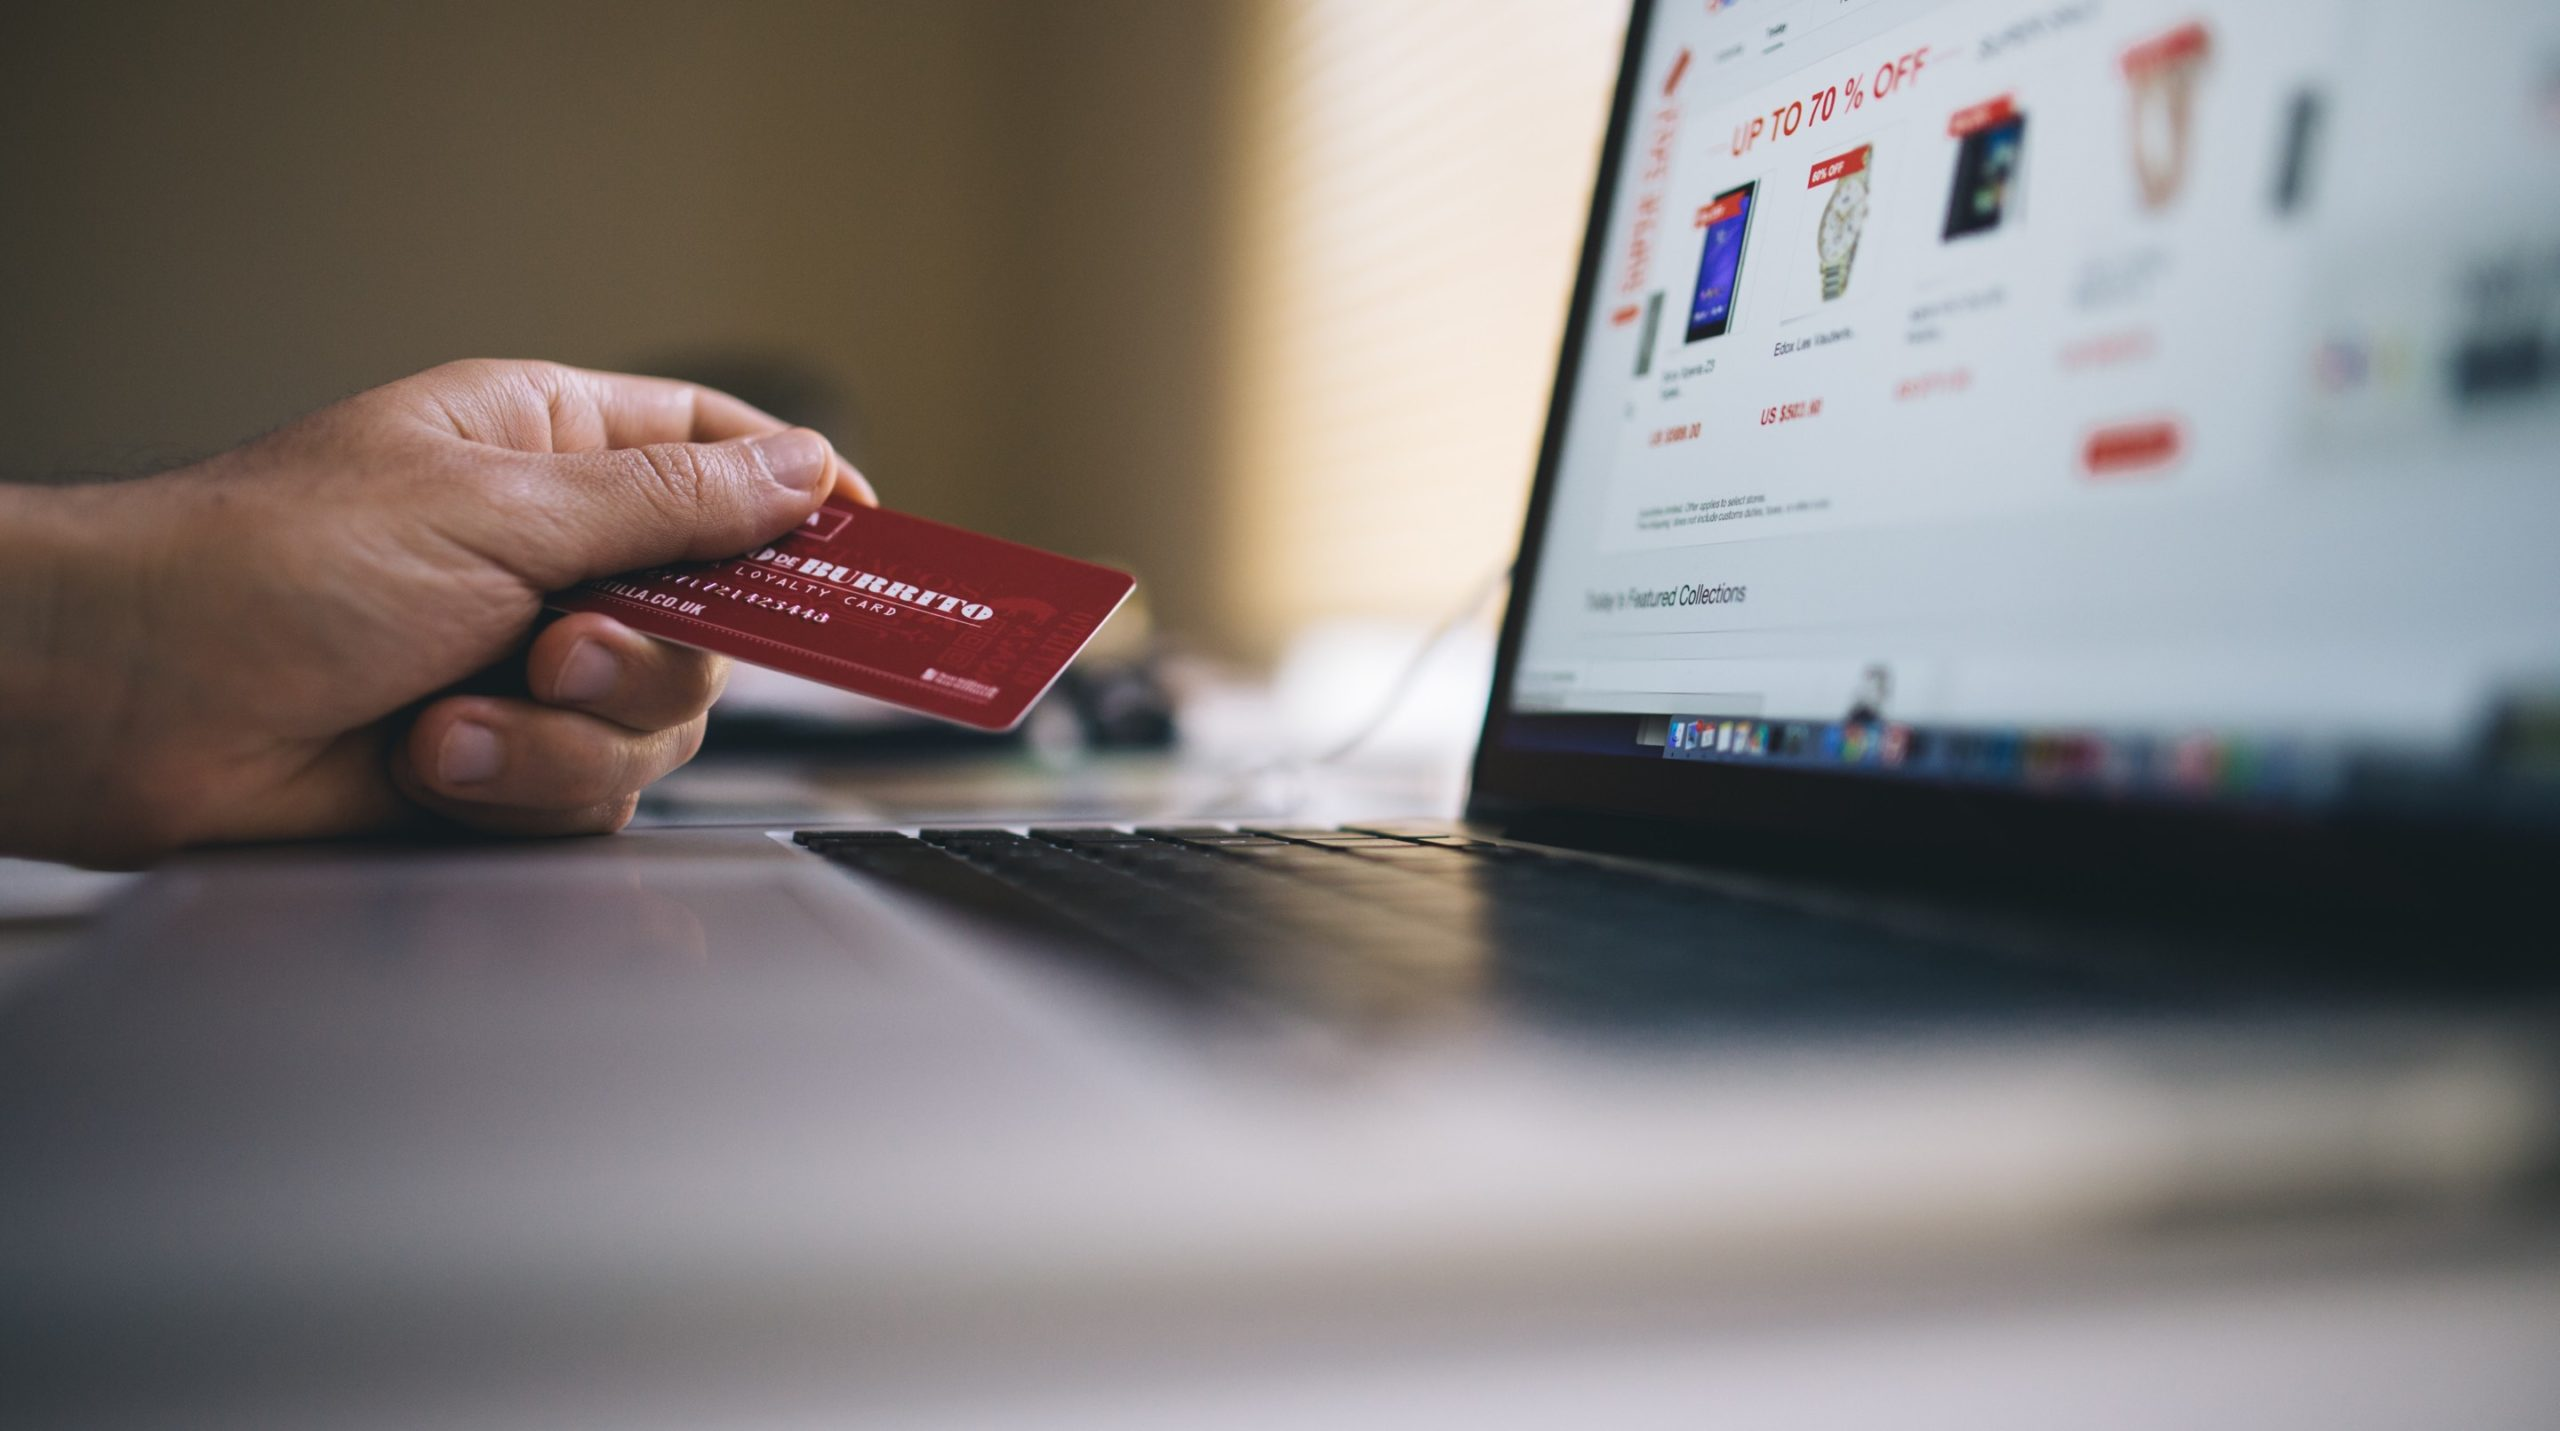 How Retailers Can Rapidly Grow Their Ecommerce with IBM Product Master